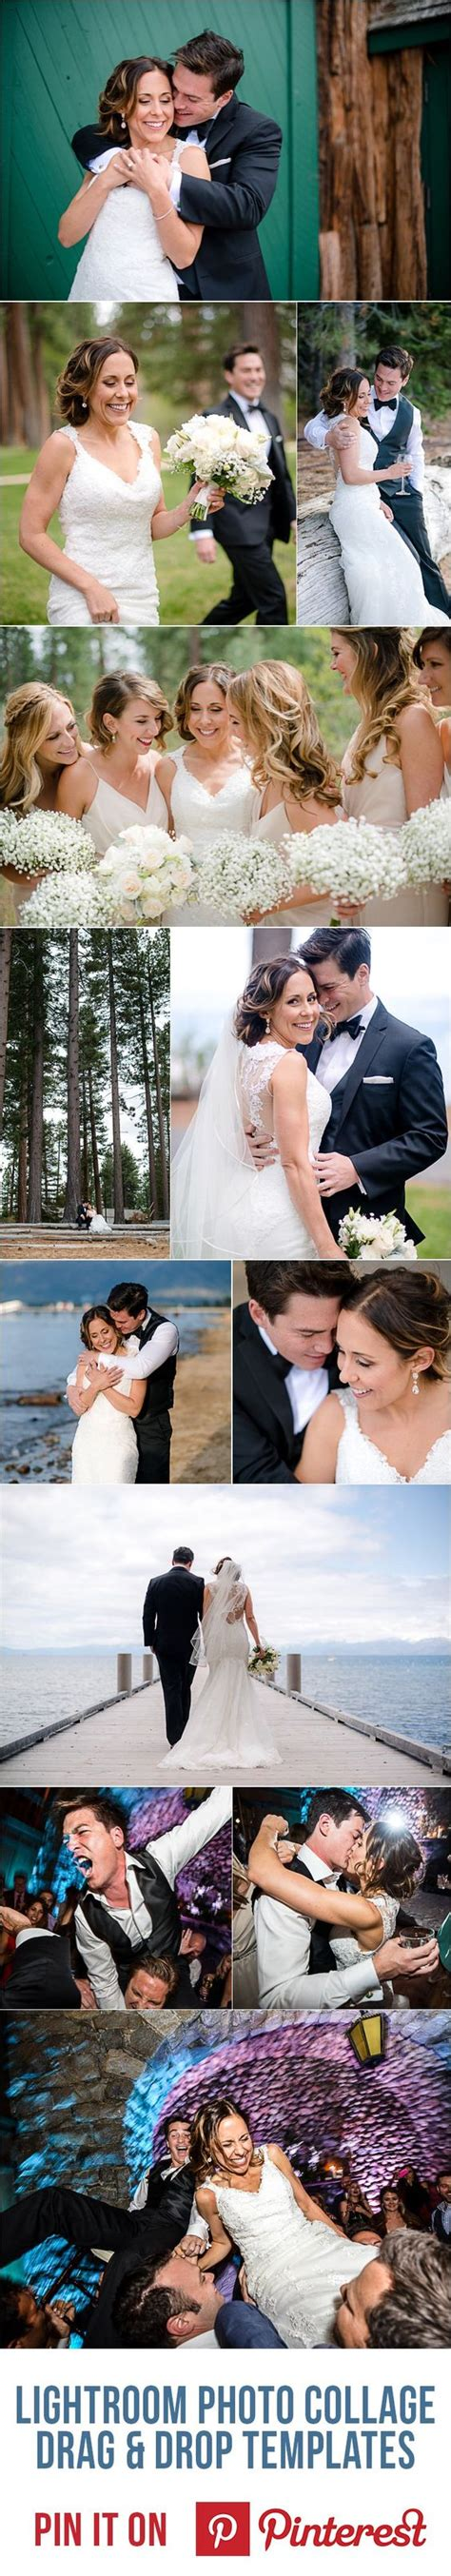 Lightroom Photo Collage Templates To Make Designing Collages As Simple As Drag Drop Wedding Lightroom Collage Templates